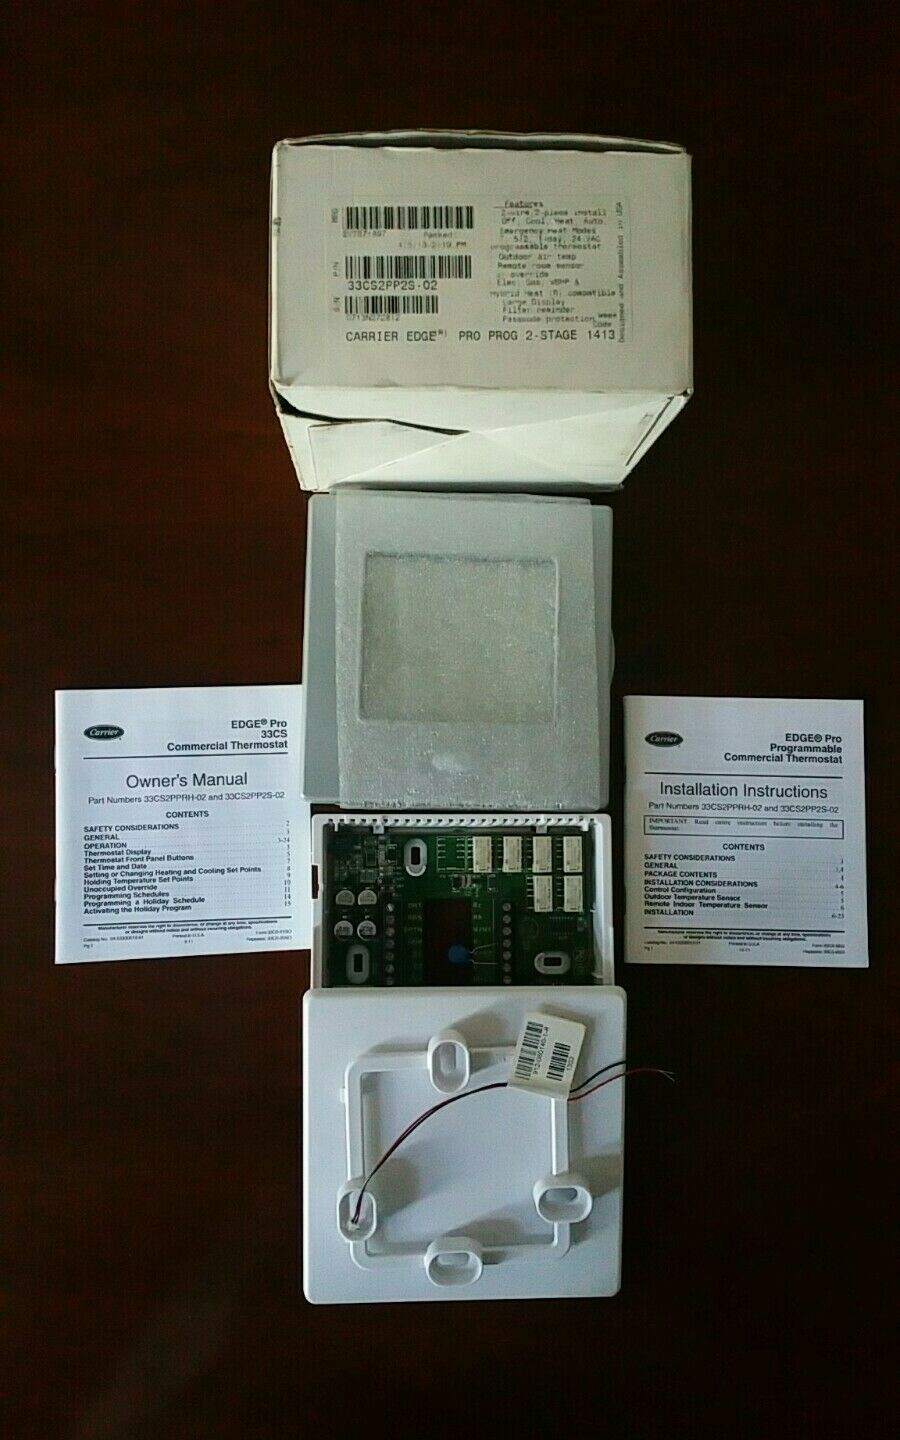 Carrier Edge Pro Programmable 2 Stage 33cs2pp2s 02 Thermostat For Sale Online Ebay